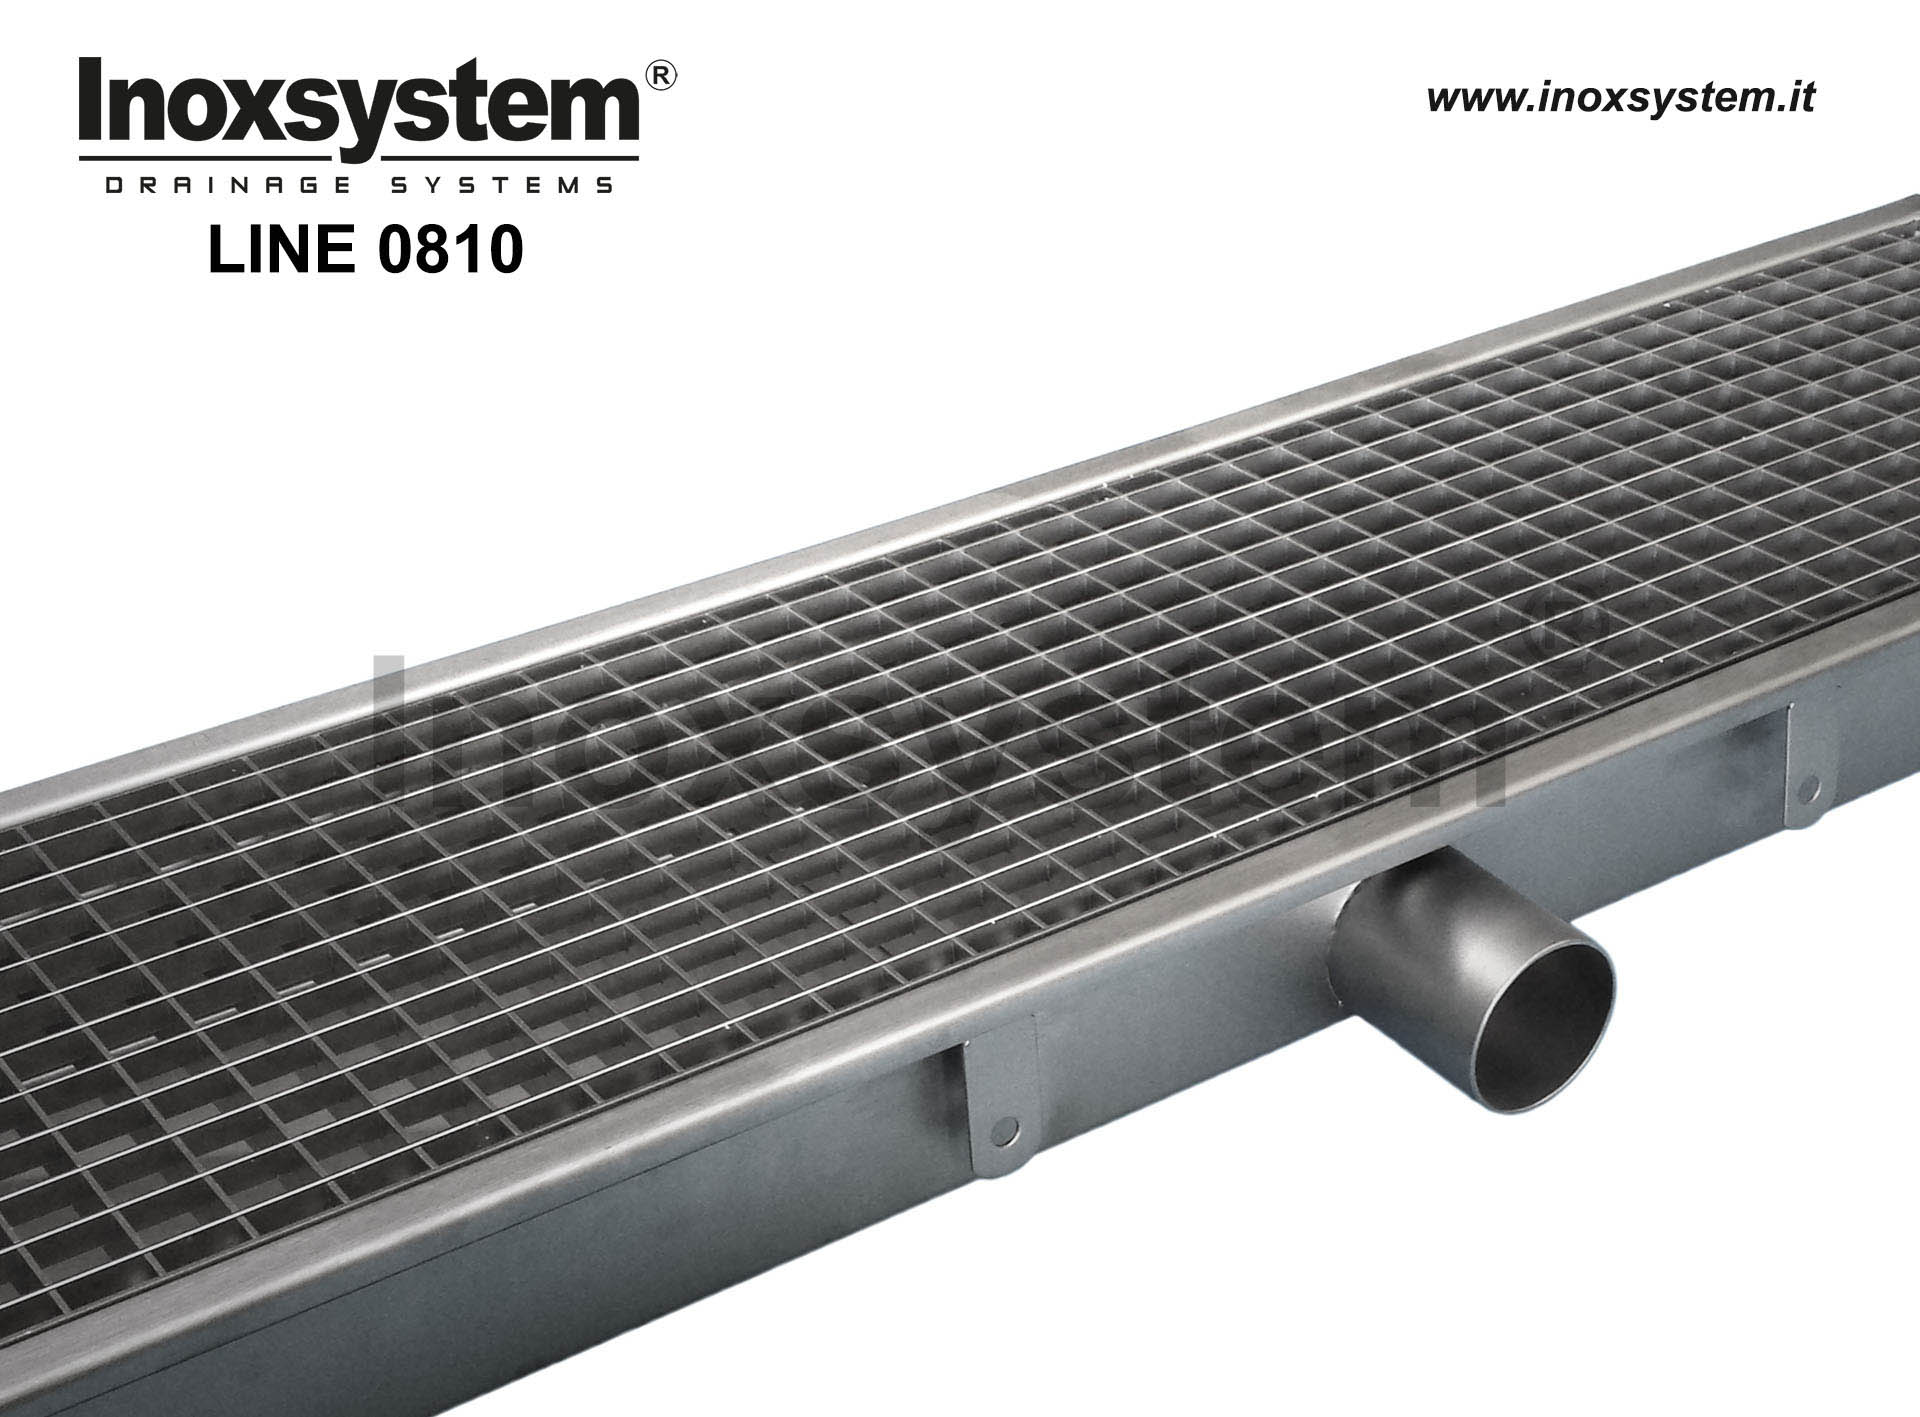 Stainless steel grating channel with direct outlet